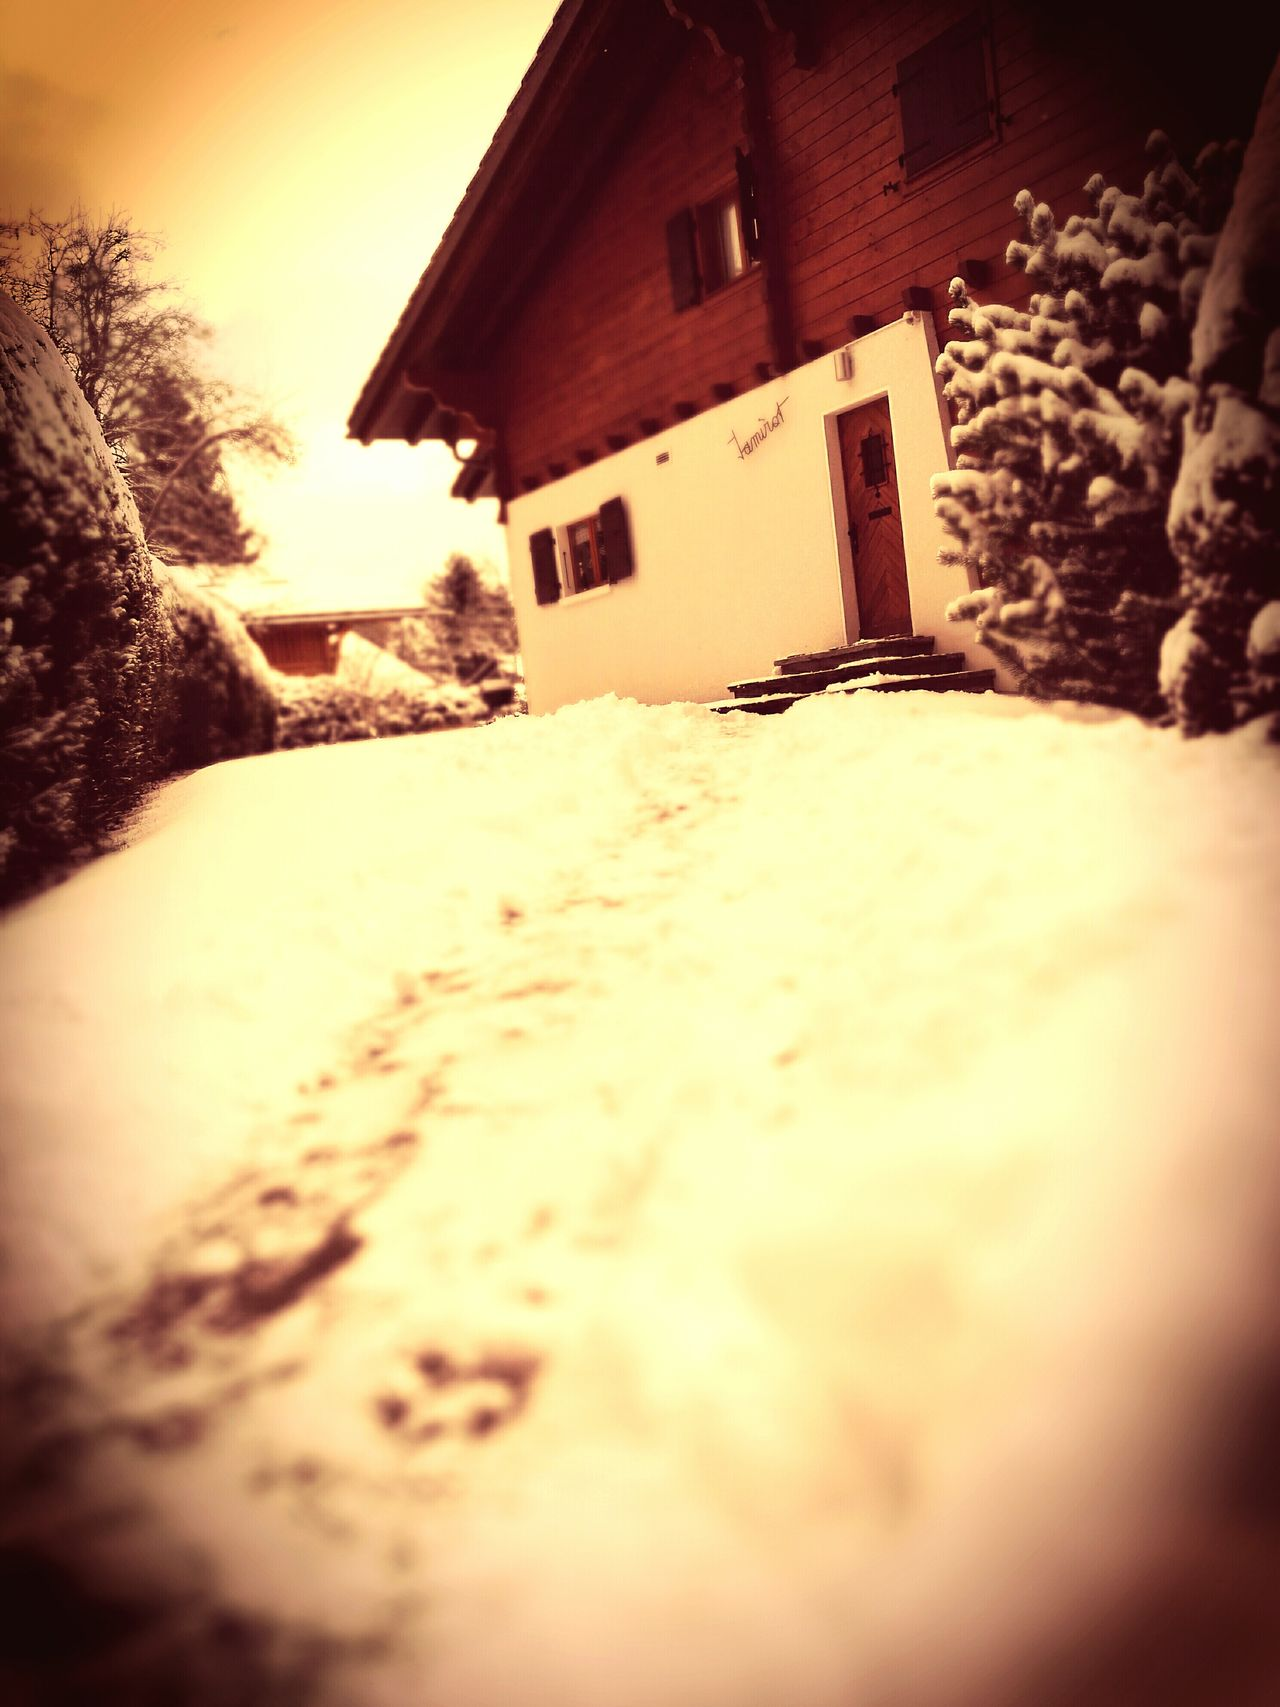 Traveling Home For The Holidays Swiss Alps Home Swissmade Tranquility Swiss Mountains Swissbeauty No People House Entrance Snow Outdoorshot Houses And Mountains Chalet Snow ❄ Trail Traveling Home For The Holidays